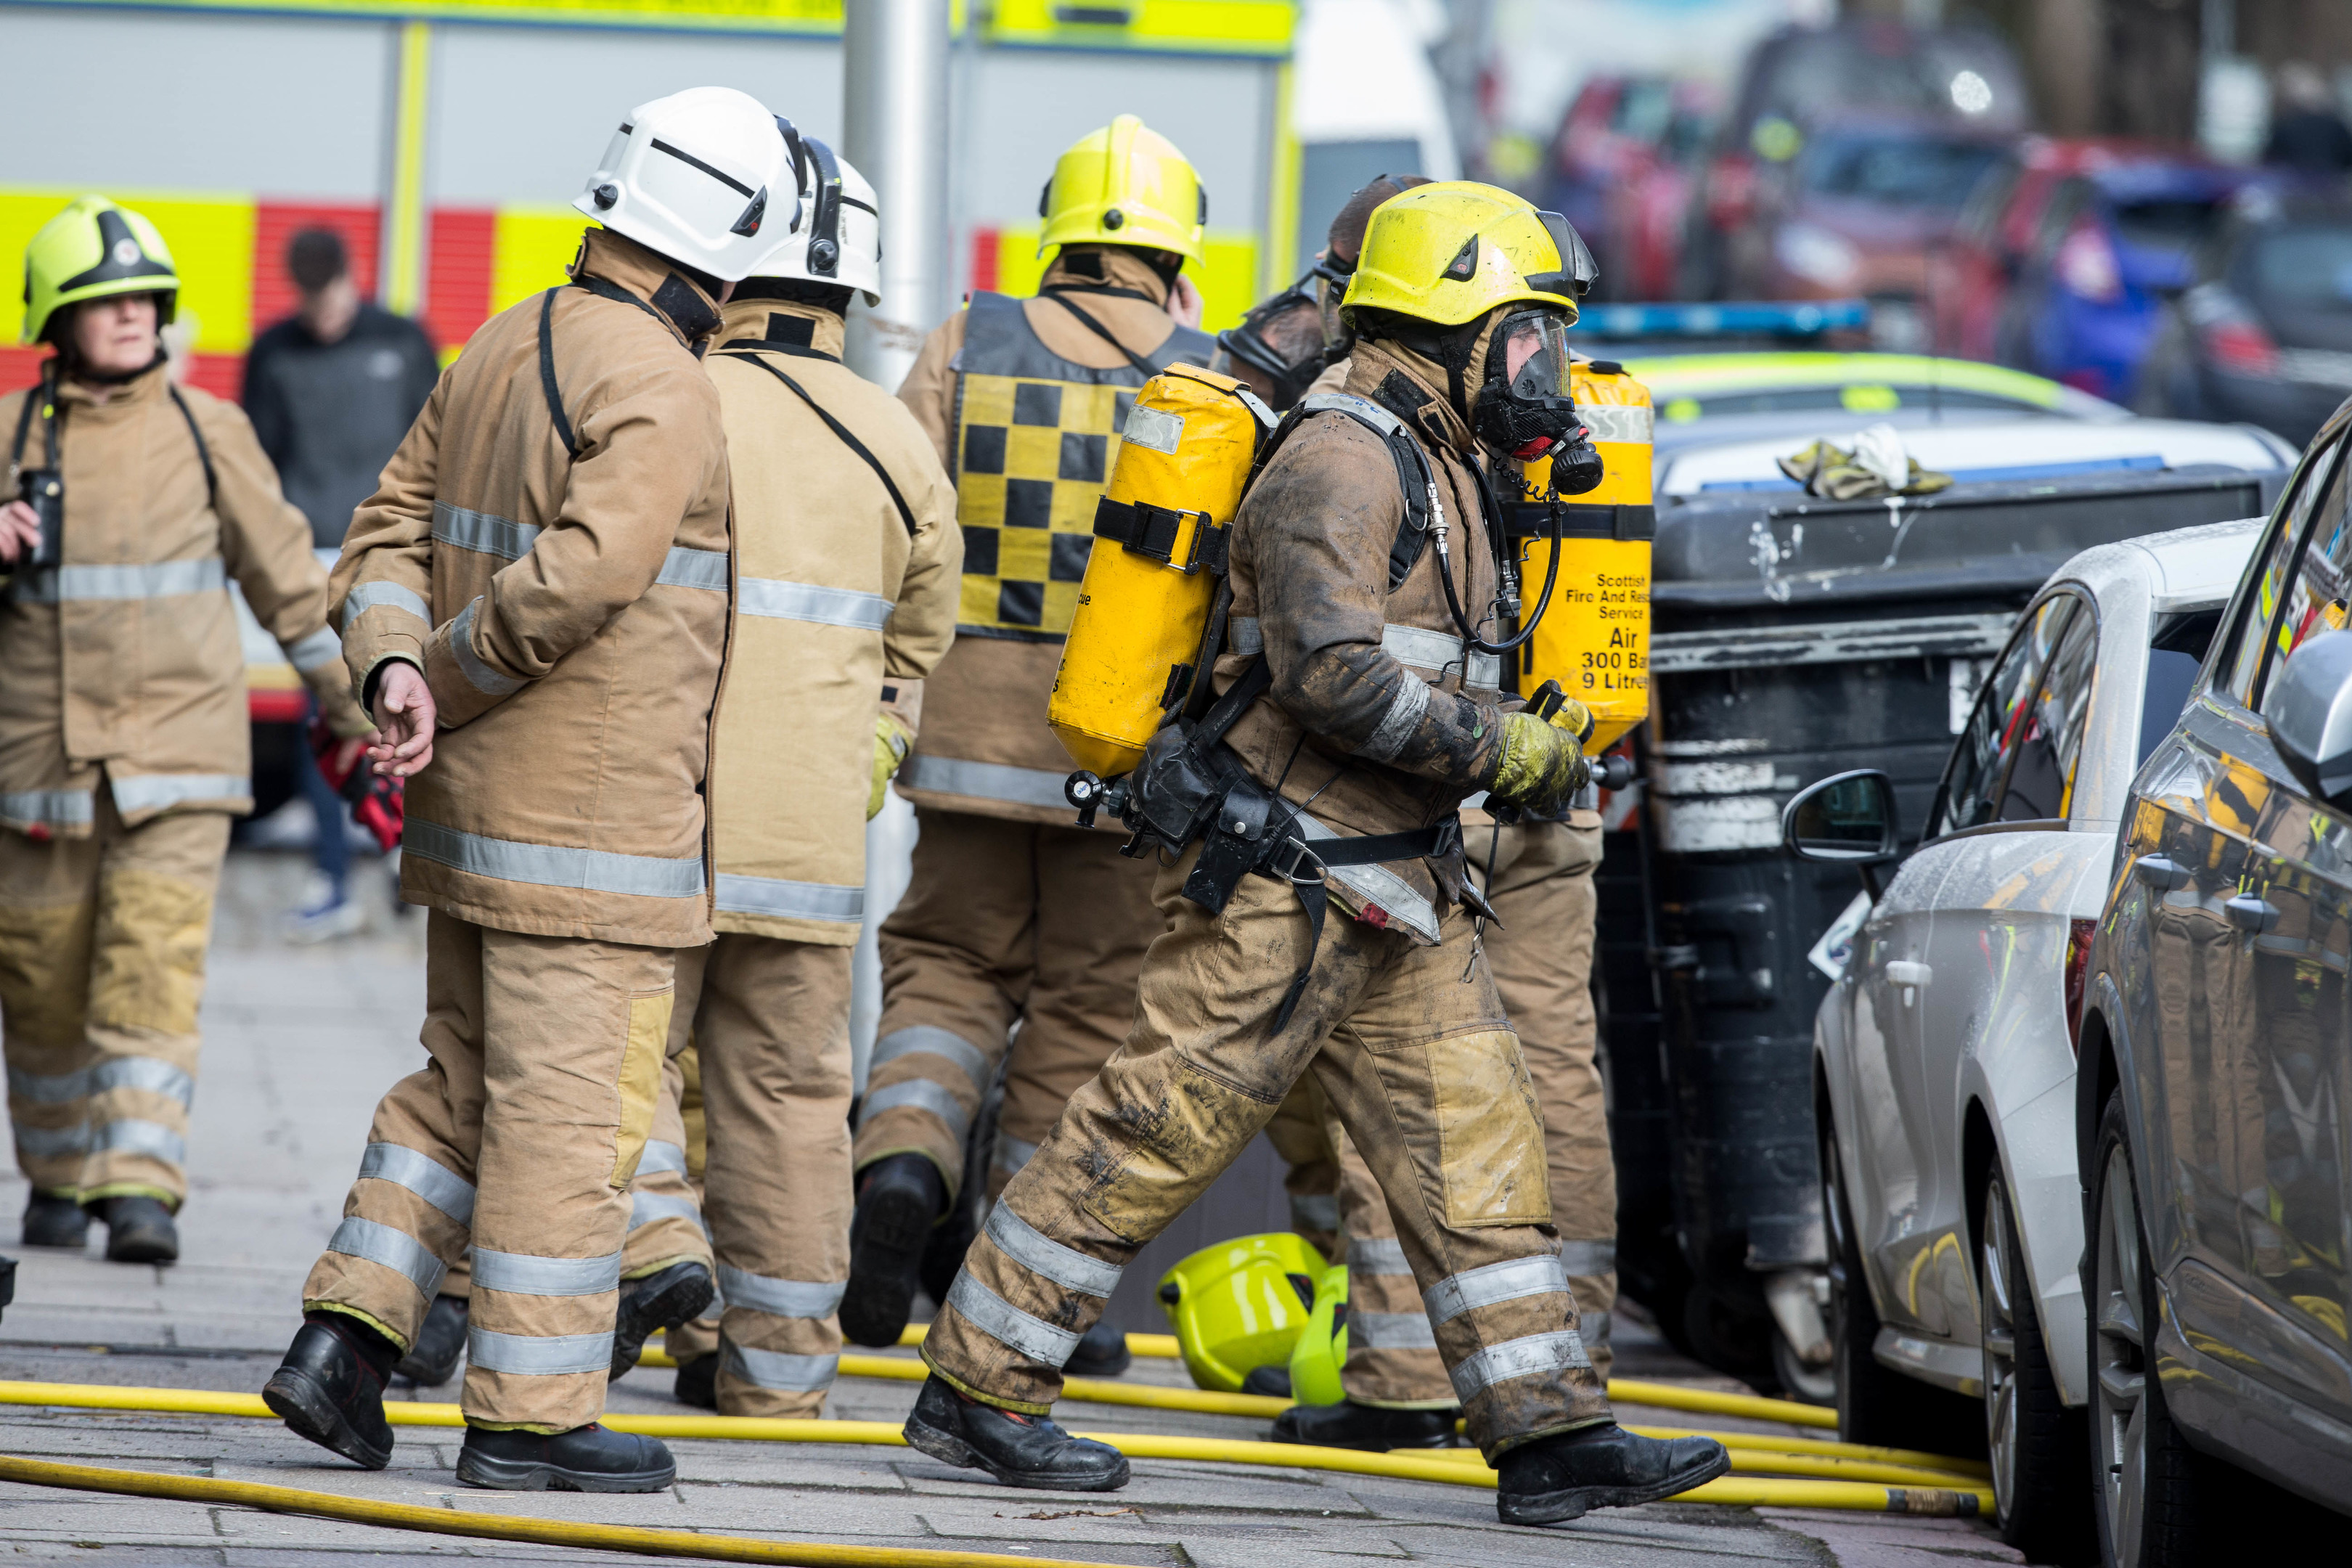 Incident:  A fire service report is to be considered.